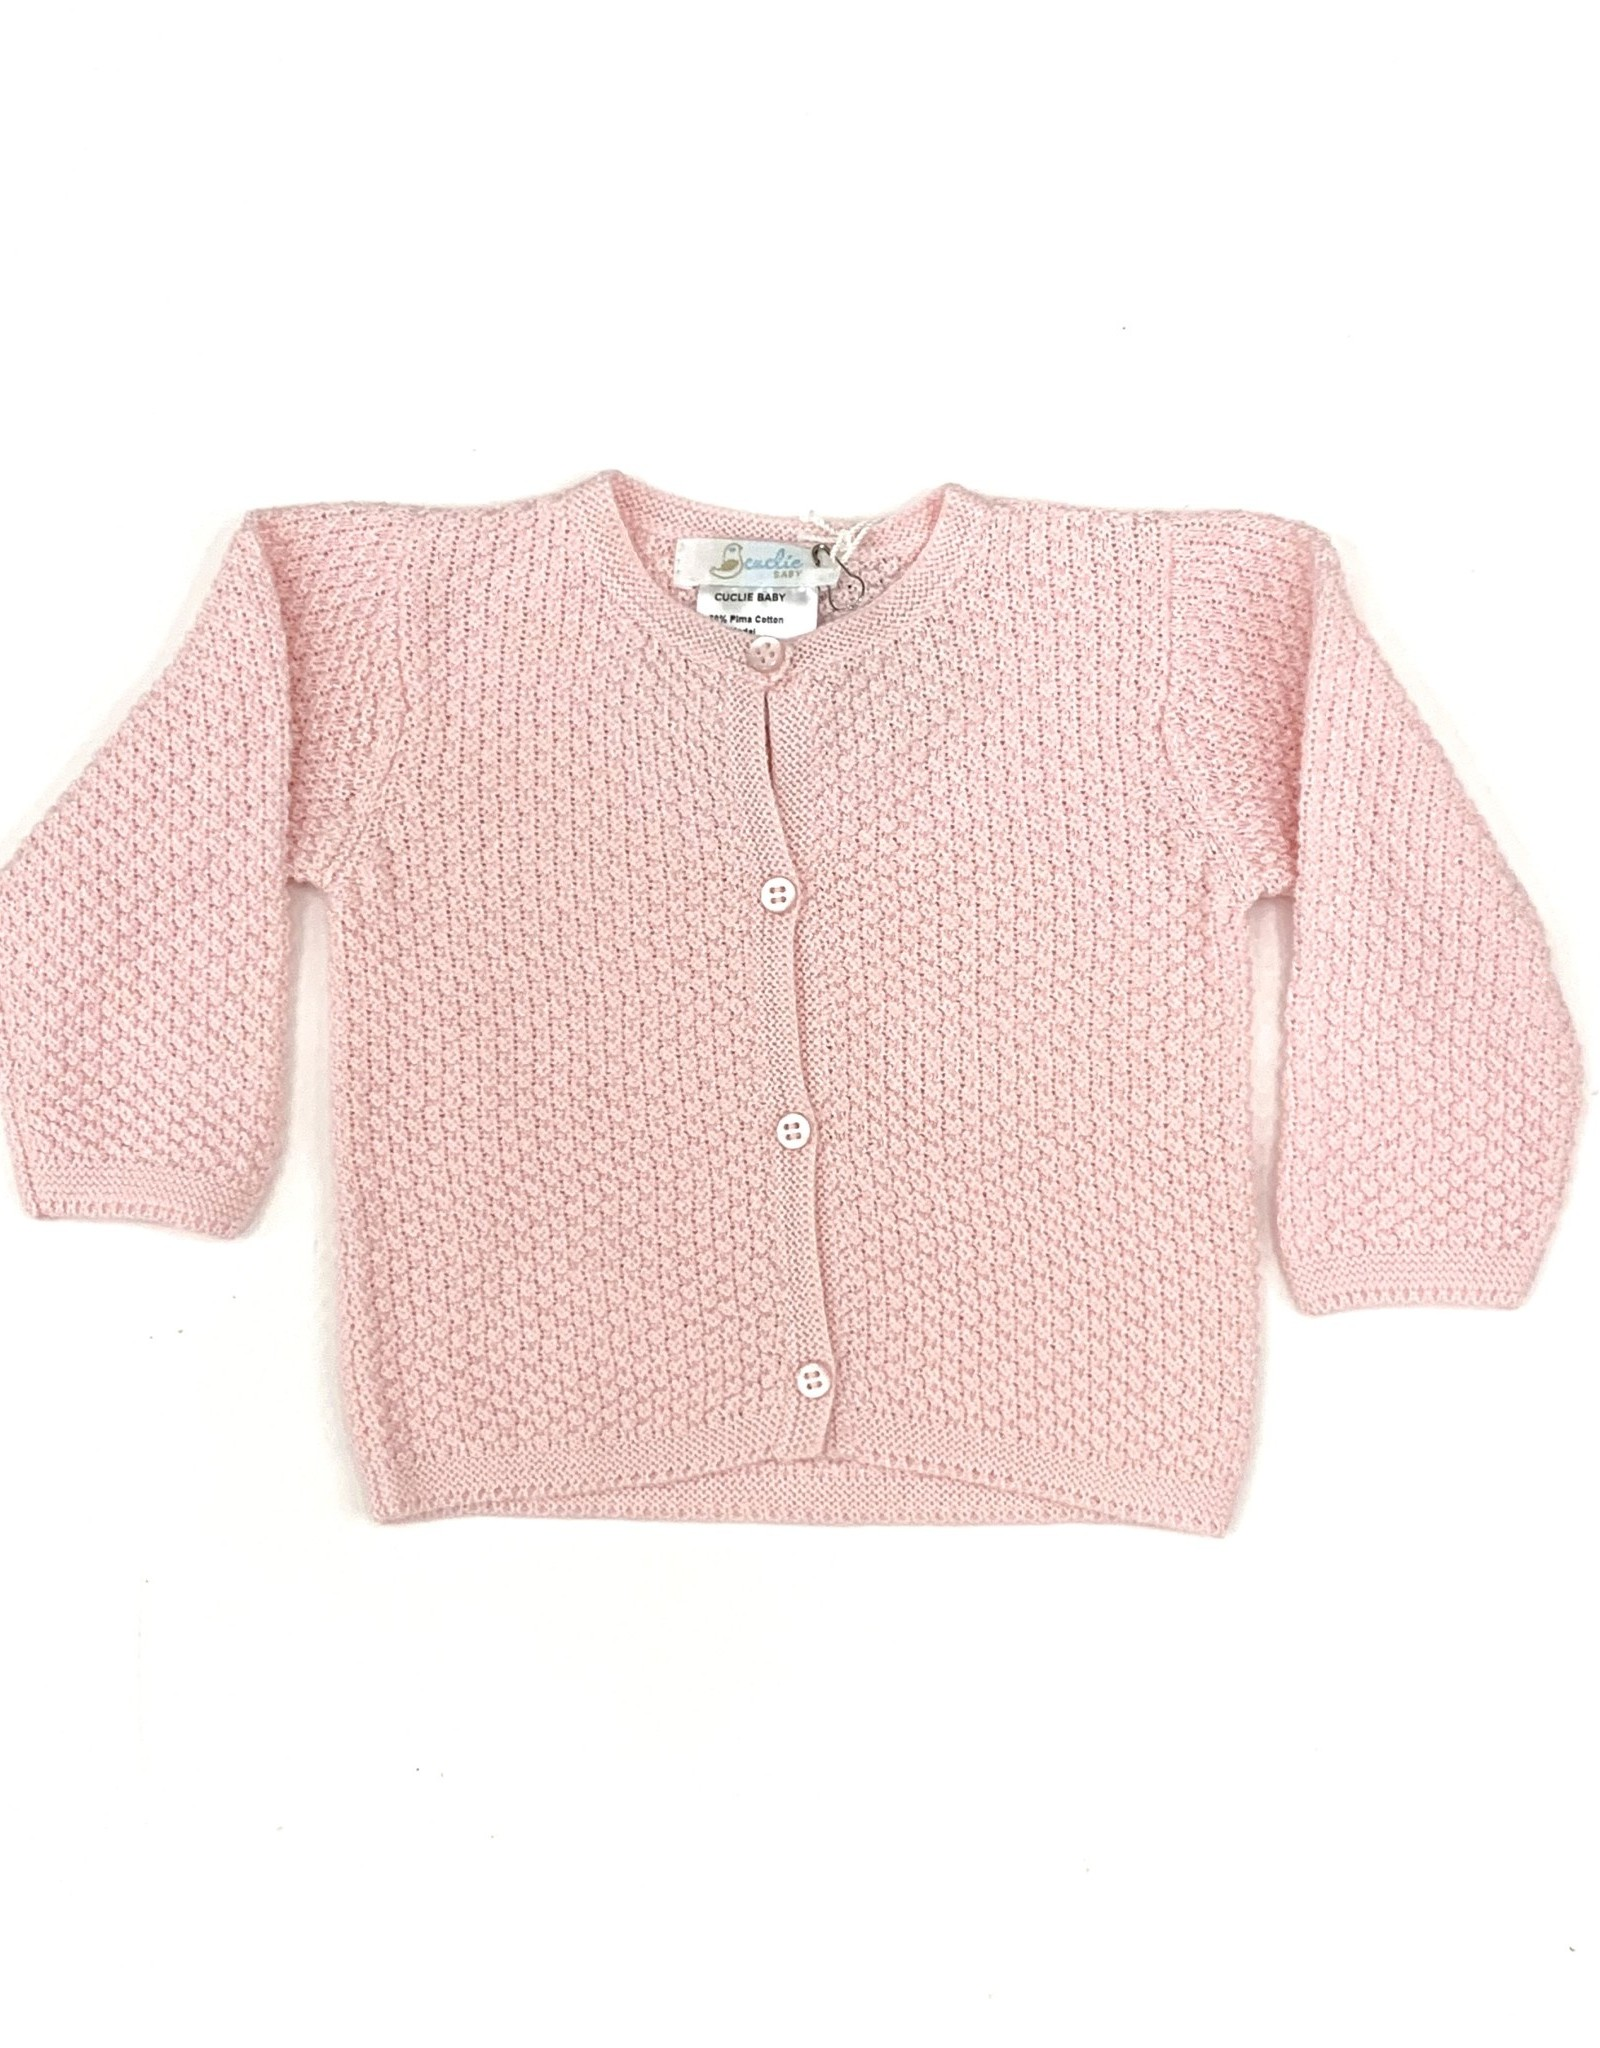 Cuclie Baby Contrast Knit Cardigan Pink